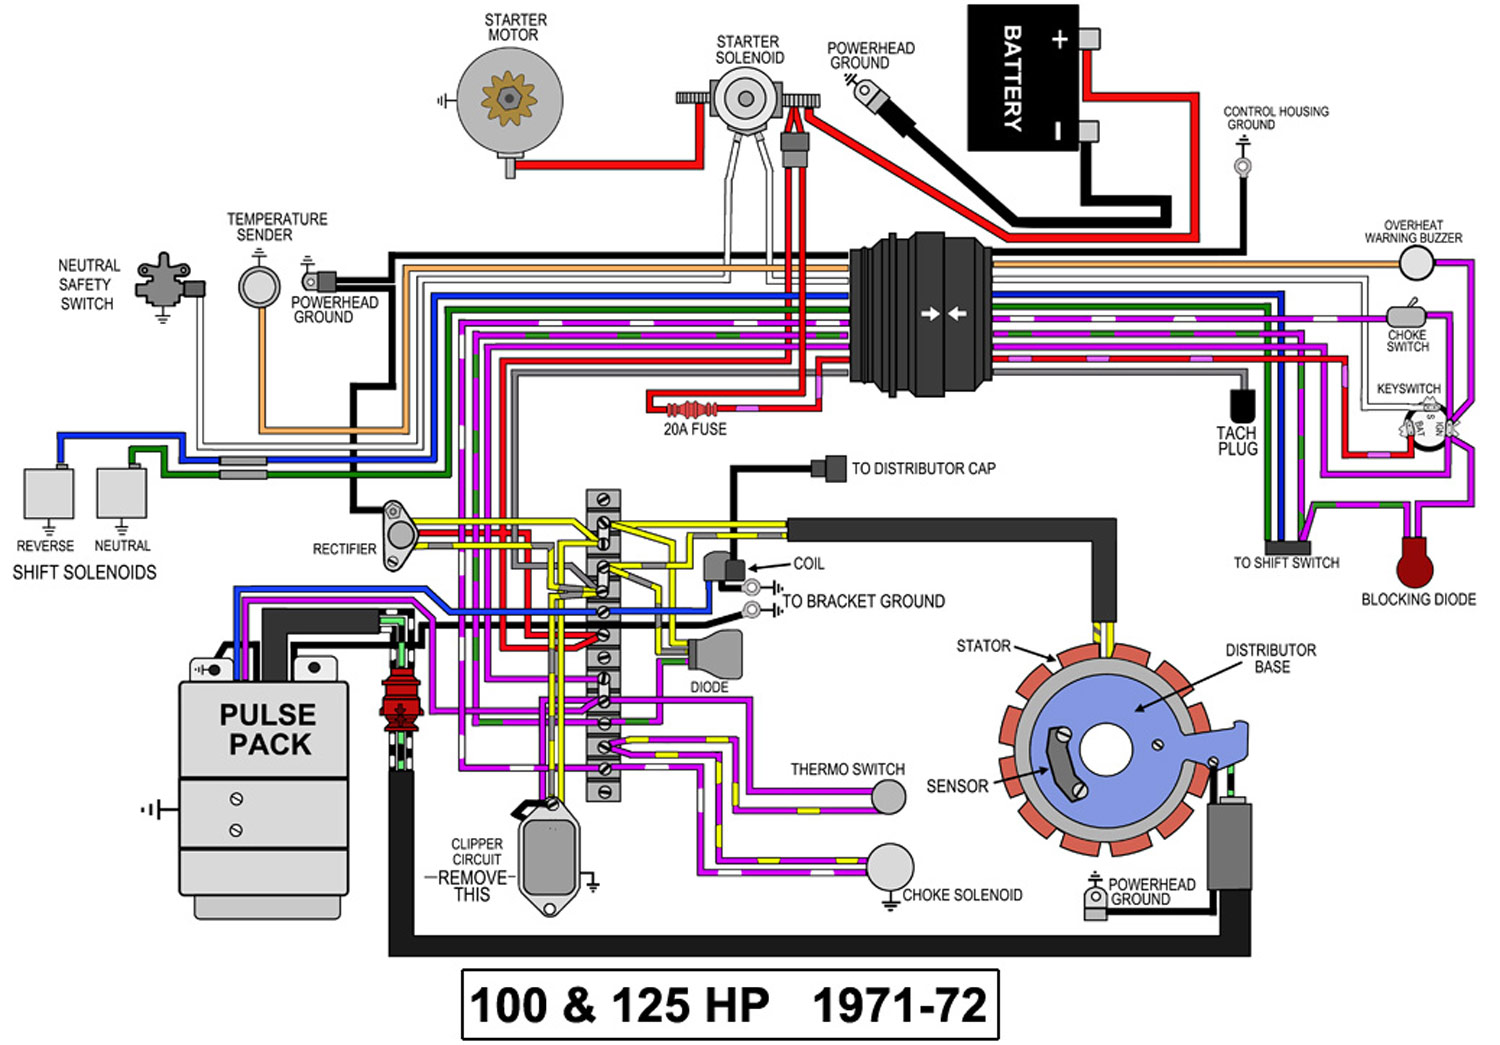 Evinrude Johnson Outboard Wiring Diagrams Mastertech Marine 1978 F150 Charging System Diagram 100 125 Hp